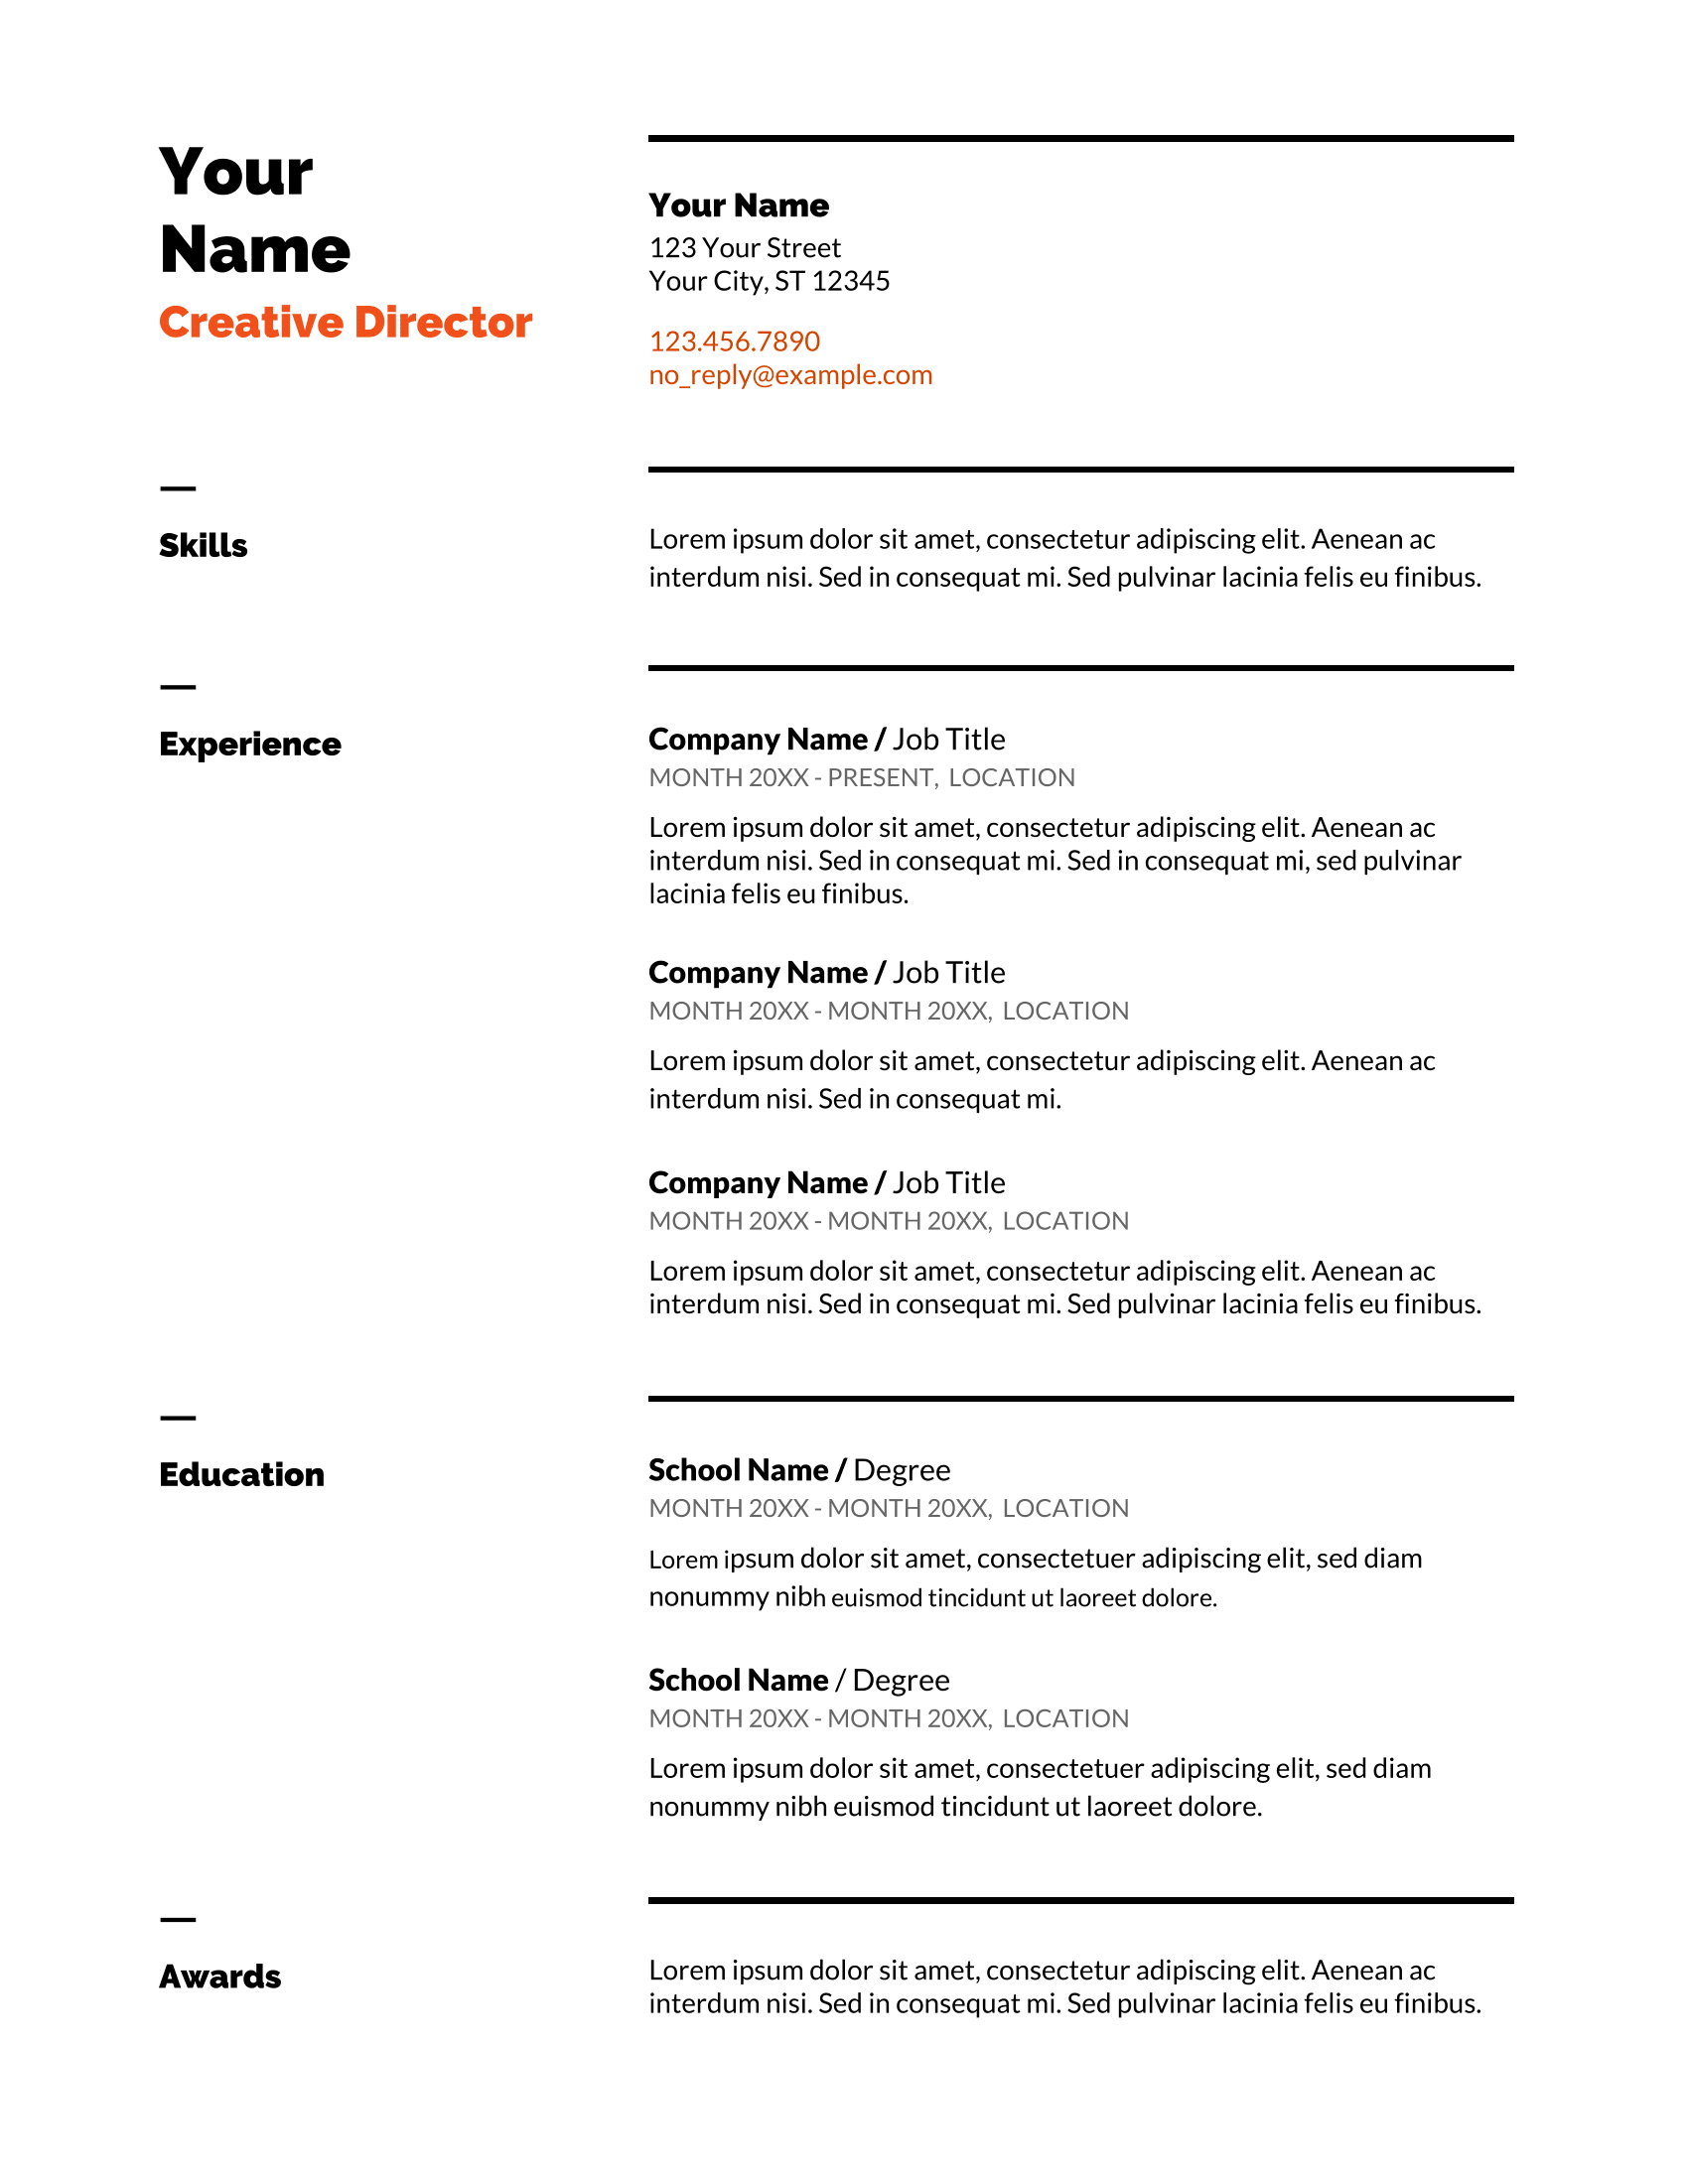 2020 list of top 5 google docs resume templates